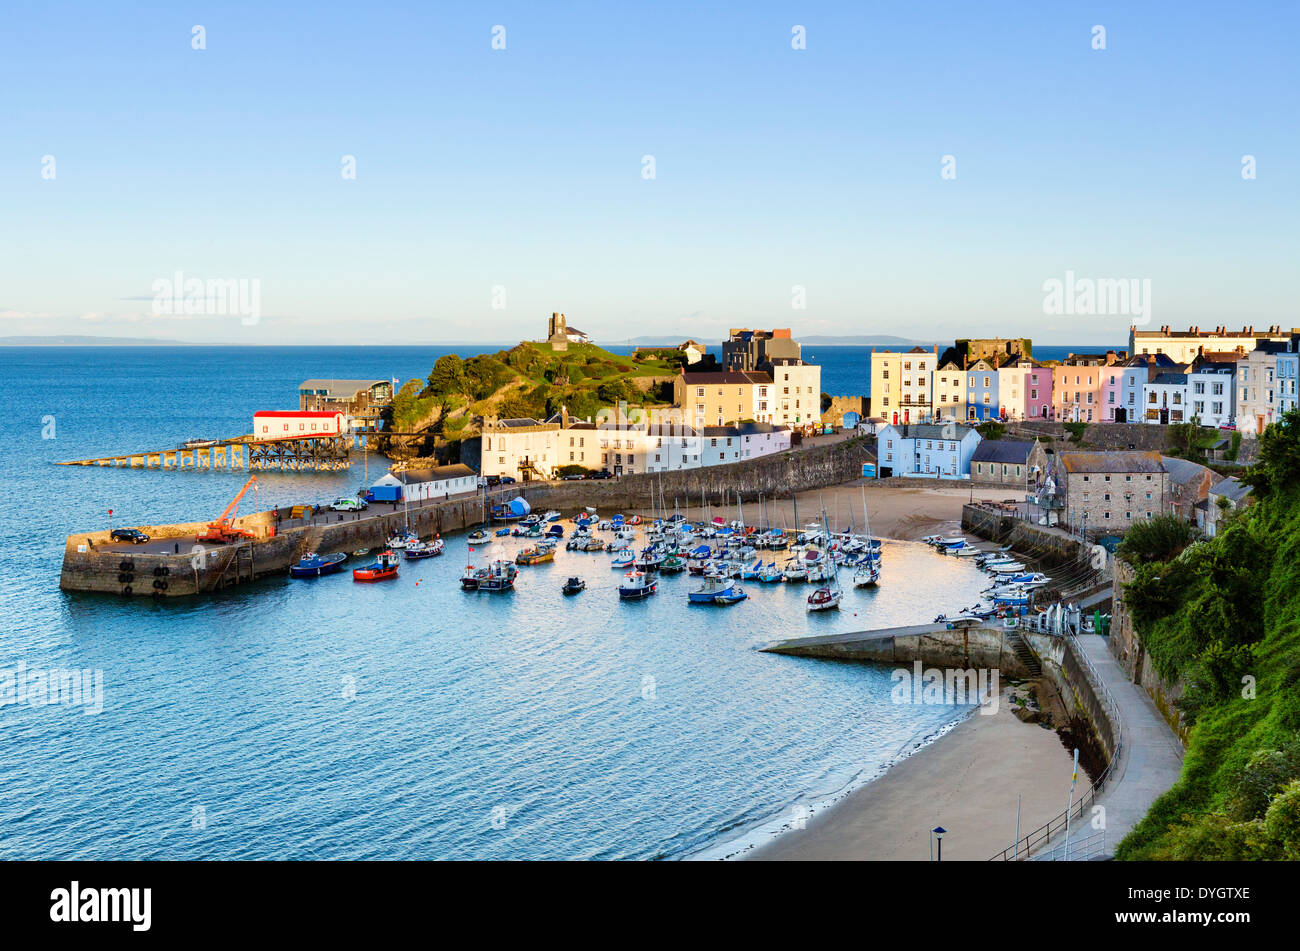 View over the harbour at high tide in the early evening, Tenby, Carmarthen Bay, Pembrokeshire, Wales, UK - Stock Image